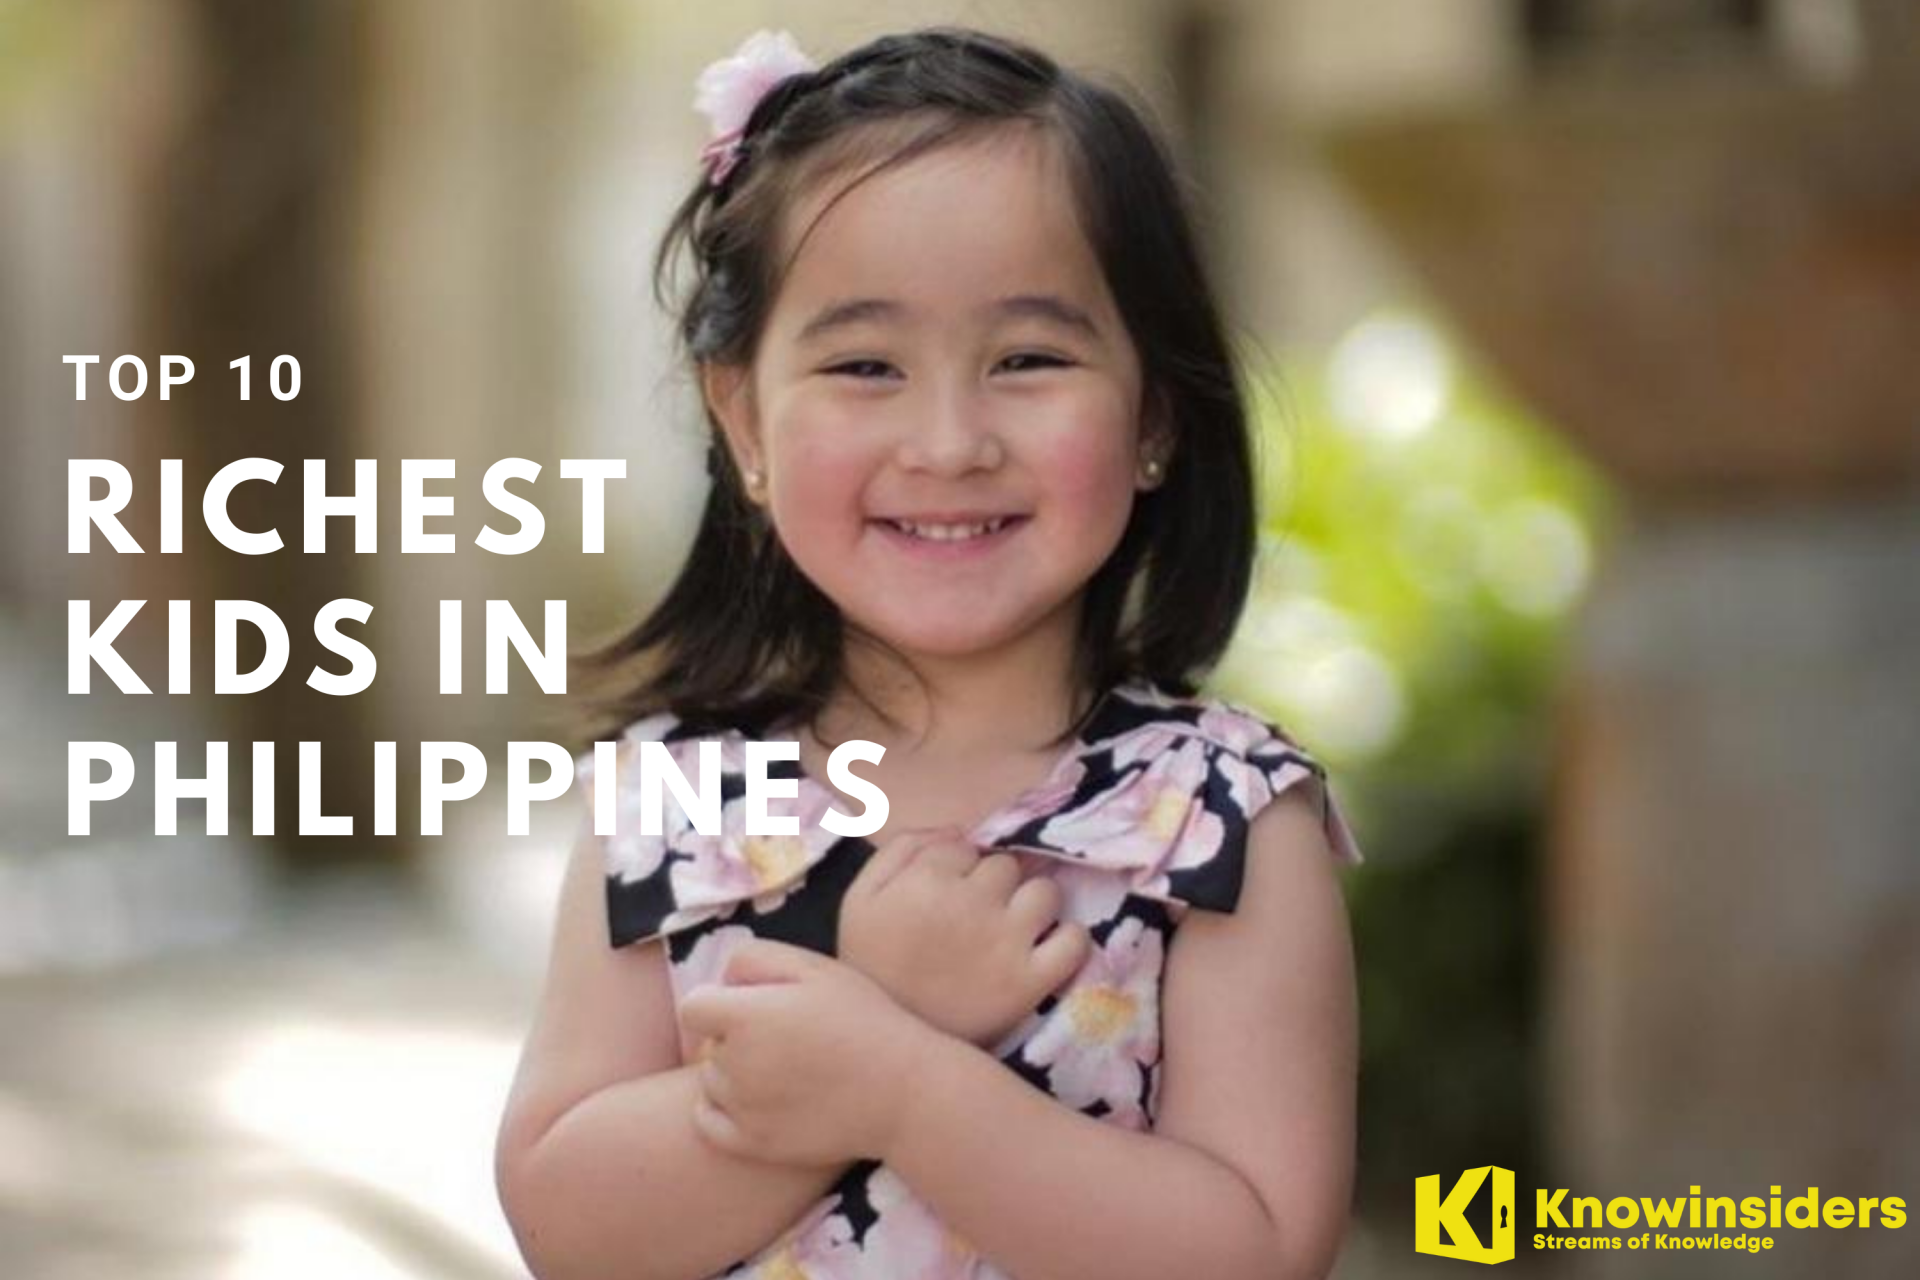 Top 10 Richest Kids In Philippines